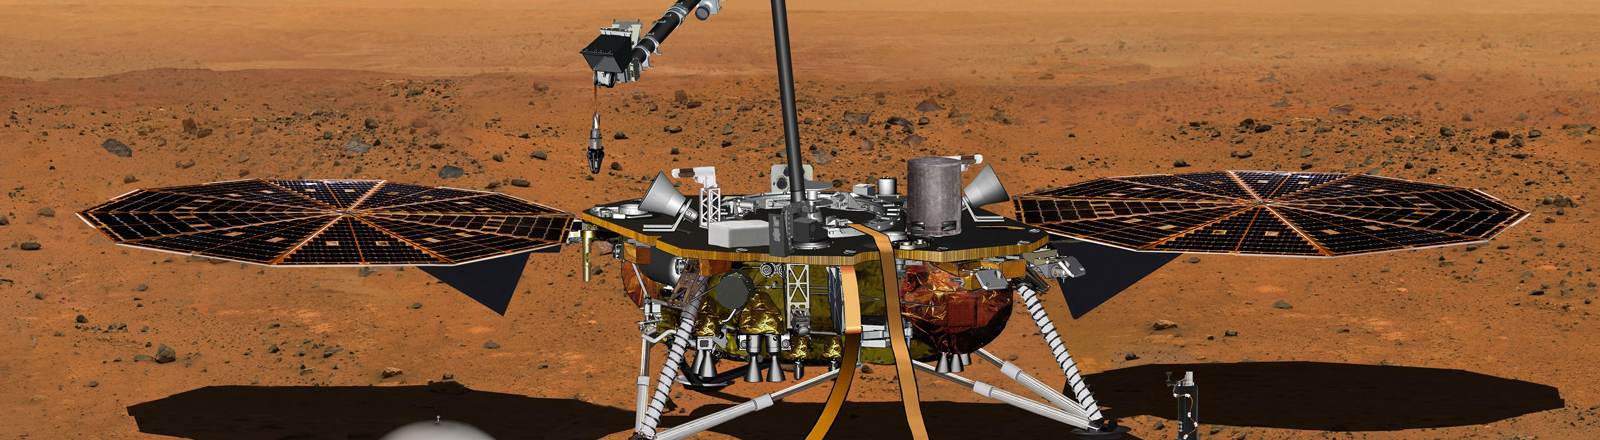 Die Nasa-Sonde Insight